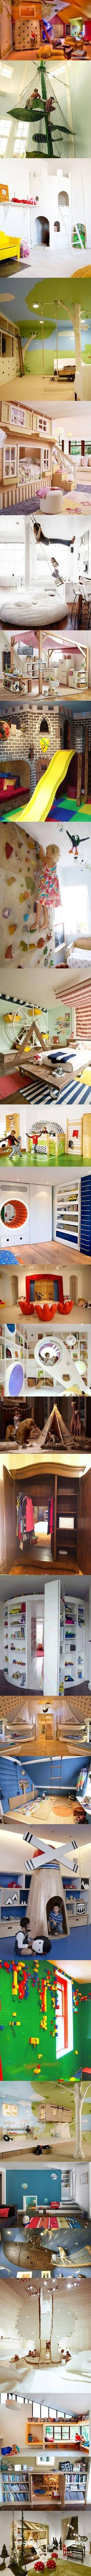 Best kid room ideas ever.